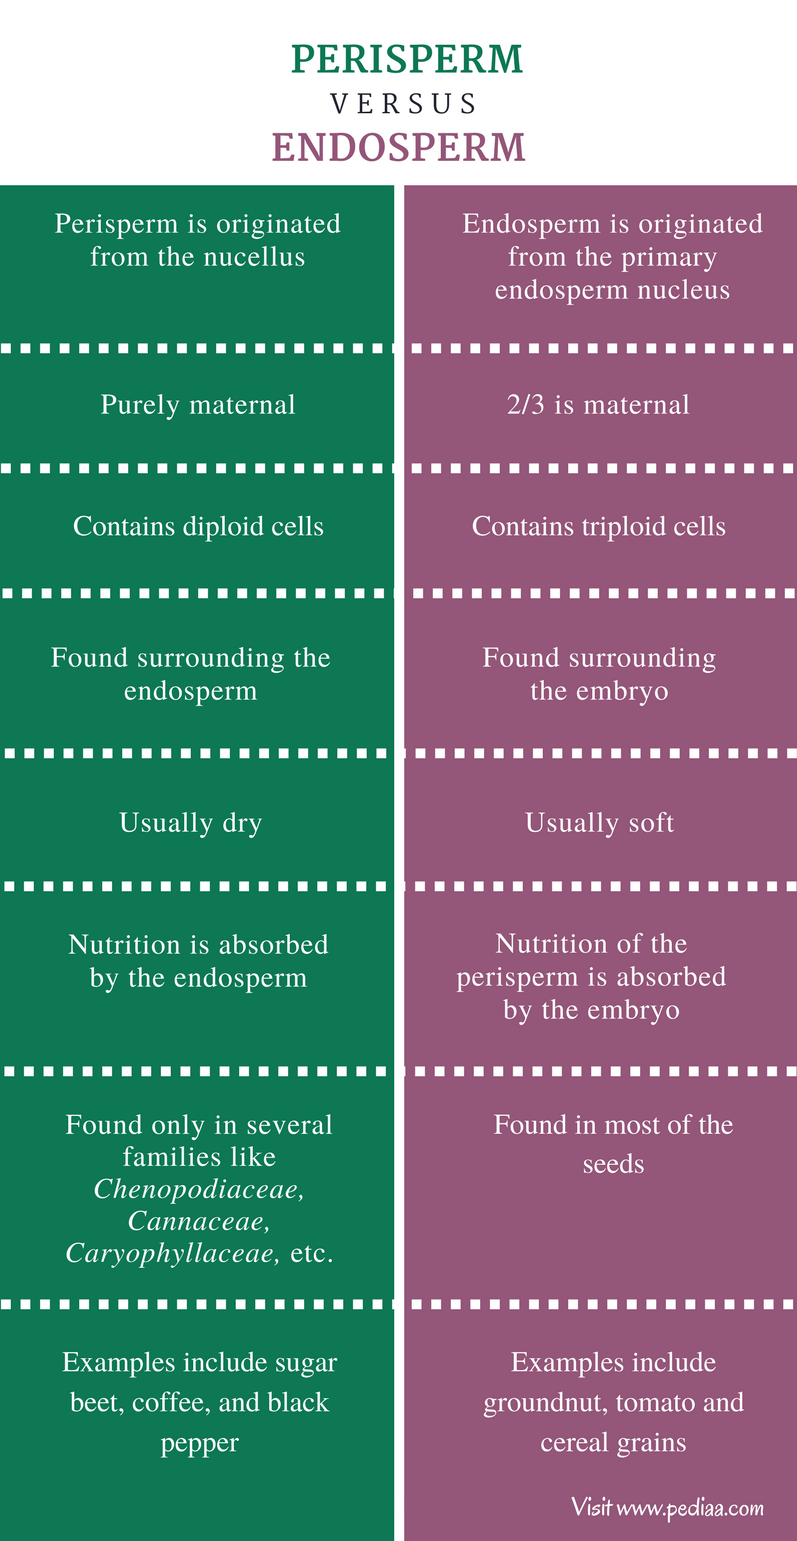 Difference Between Perisperm and Endosperm - Comparison Summary